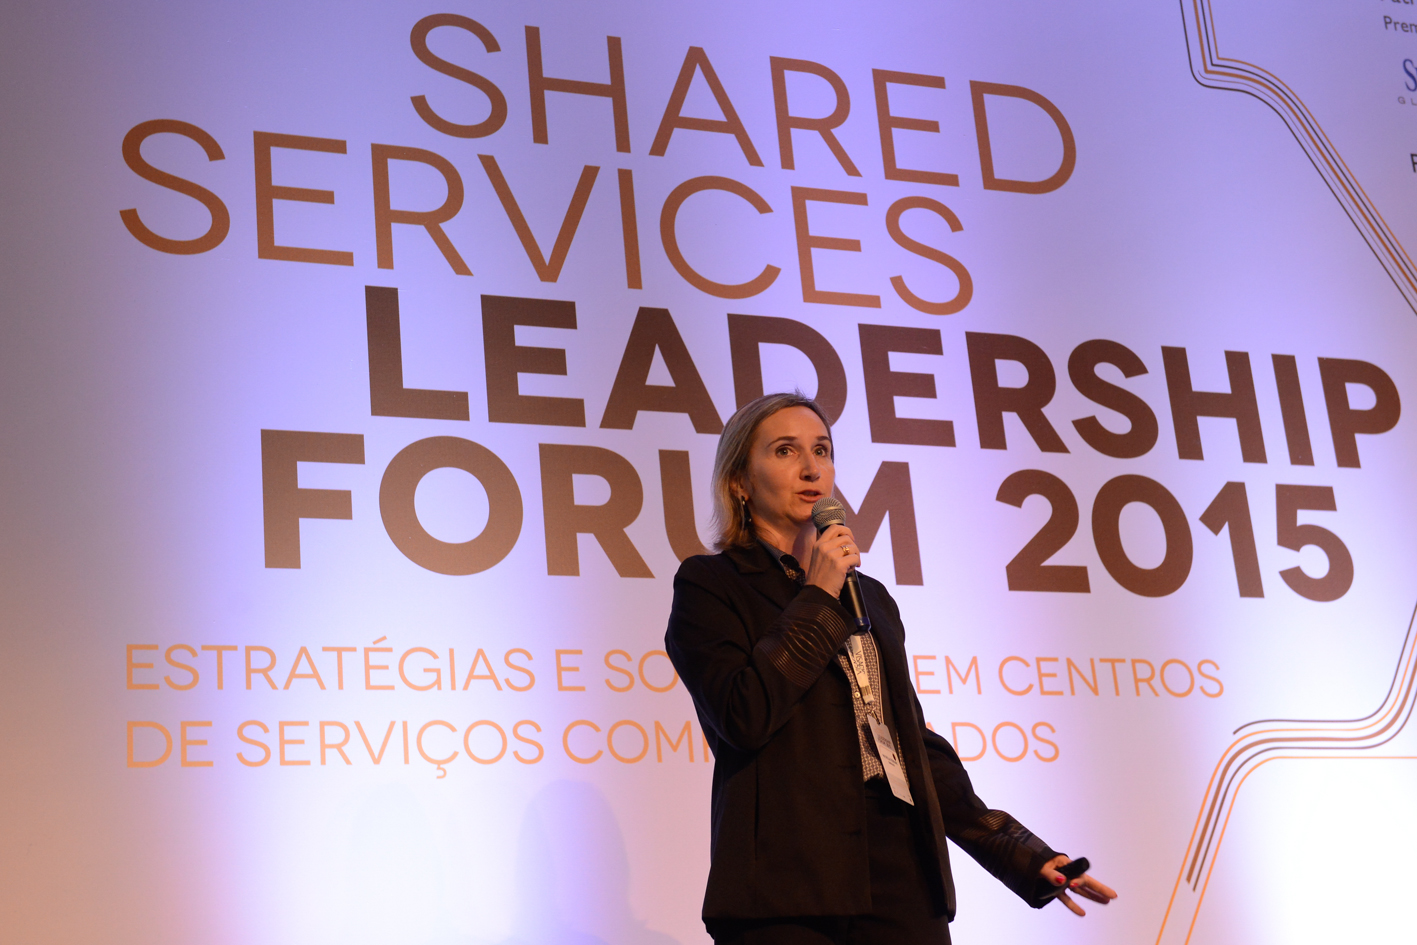 Shared Leadership Forum 2015